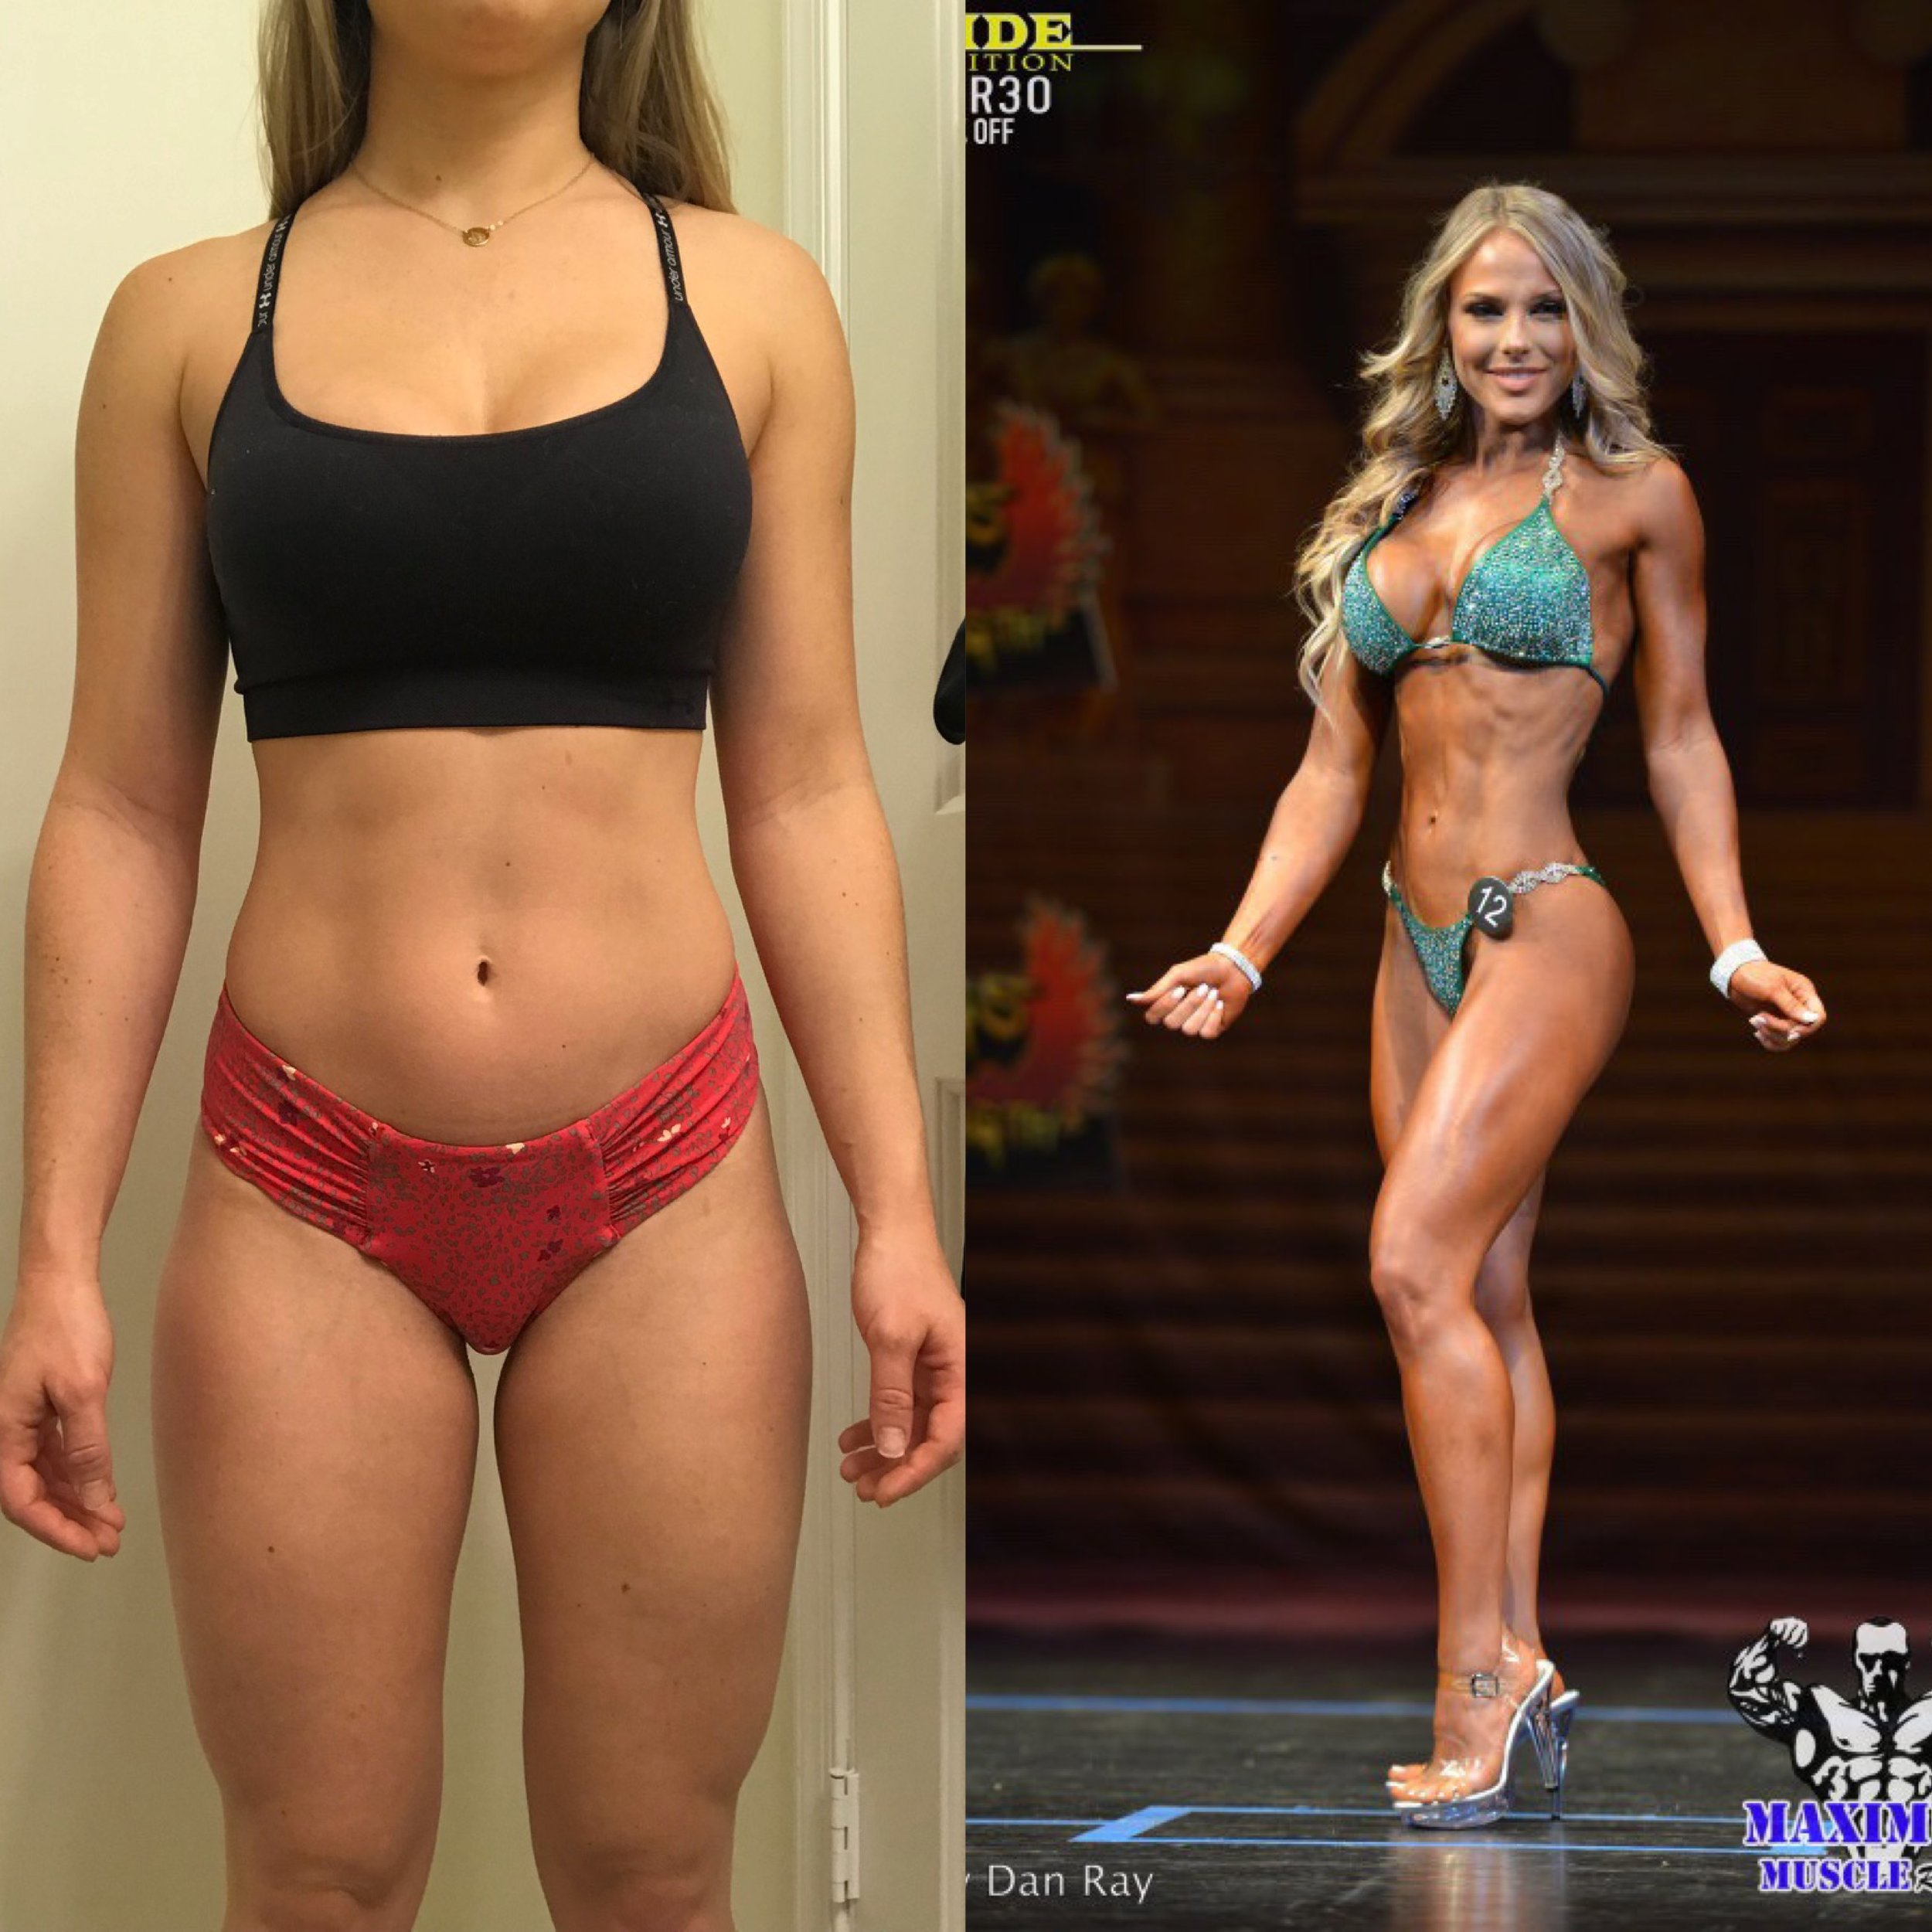 I had been training for years prior on my own but was ready to take my physique to the next level and compete in my first NPC Bikini show. I knew I was capable of putting the work in, but my biggest worry was finding a coach who I could trust my health with for my first prep. After a couple weeks of searching for the right coach, I found David. He initiated a Facetime chat with me where he answered all my questions and concerns using his knowledge and scientific reasoning. Needless to say, I confidently knew that David was the coach for me!  At times, prep was mentally and physically challenging, but David consistently made sure that the process was as comfortable as possible every step of the way. Our goal was to come in well conditioned and bring my best physique yet to the stage. With David's help, I was able to place top 2 in my class and became nationally qualified! I couldn't have asked for more of a supportive and patient coach. He even took the time to travel to my hometown and be there for me when I competed. I am excited to continue working with David to achieve my IFBB Pro Card!